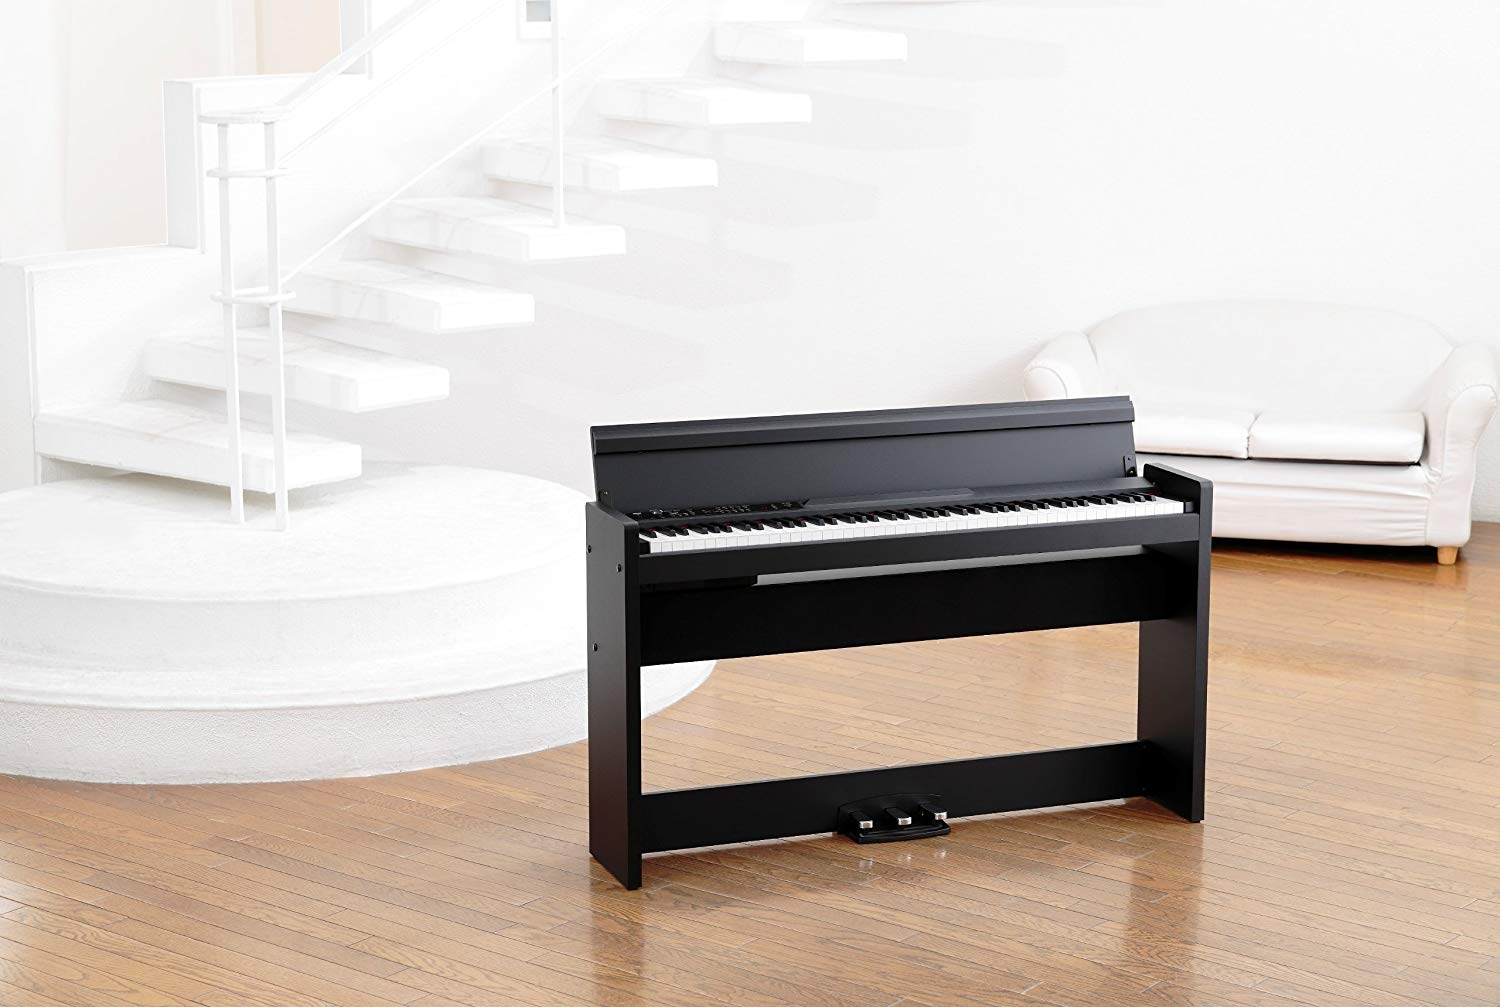 korg lp380 review is this keyboard any good for your choice. Black Bedroom Furniture Sets. Home Design Ideas